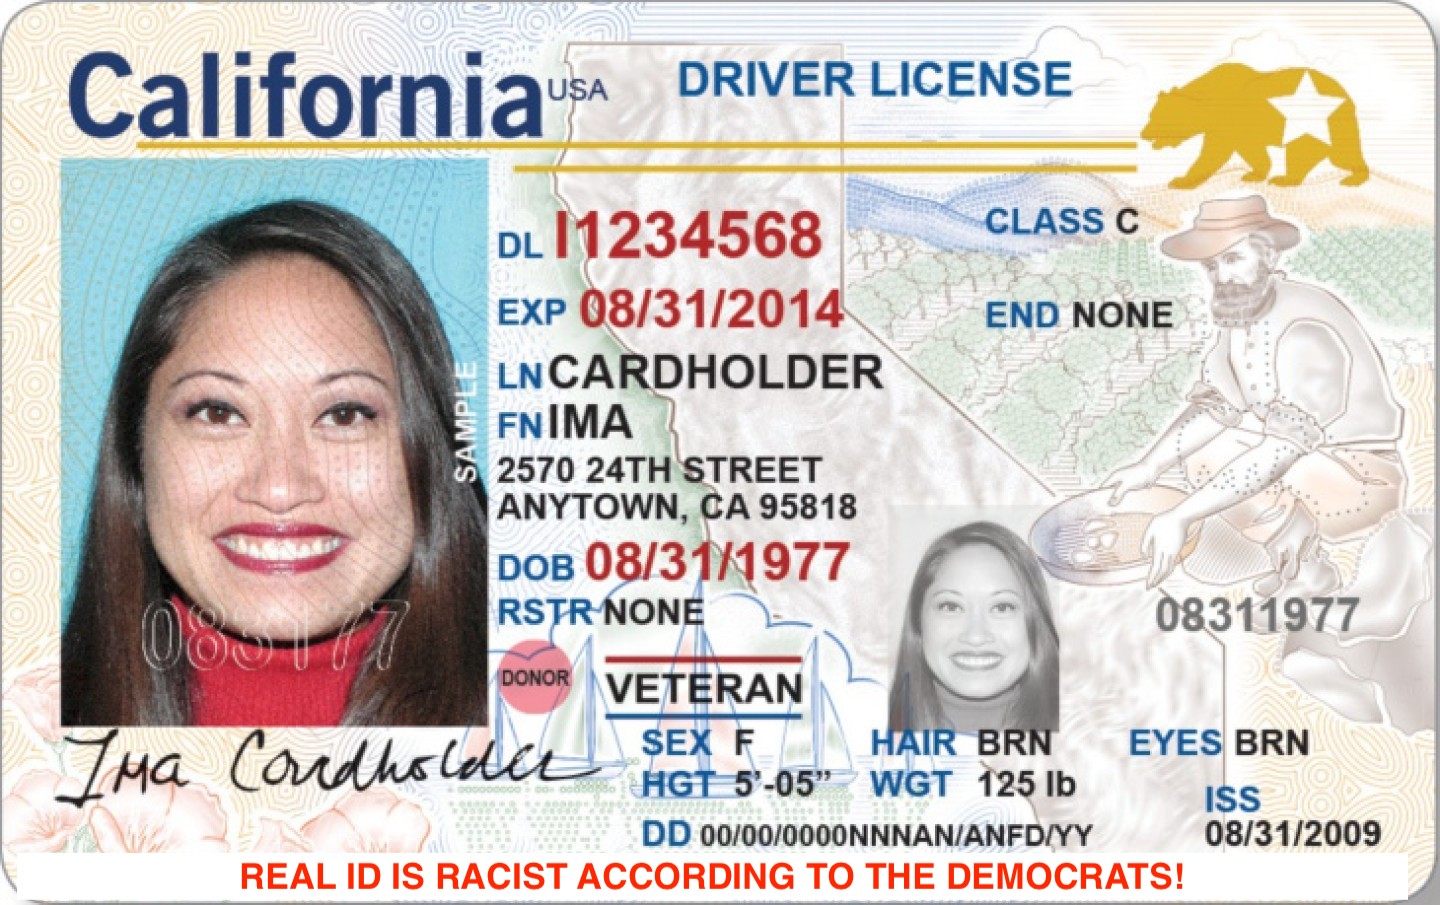 """THE US GOVERNMENT PUSHING THE """"REAL ID"""" WITH A NEW DEADLINE.  BUT WHAT ABOUT RACISM? JIM CROW 2.0?"""